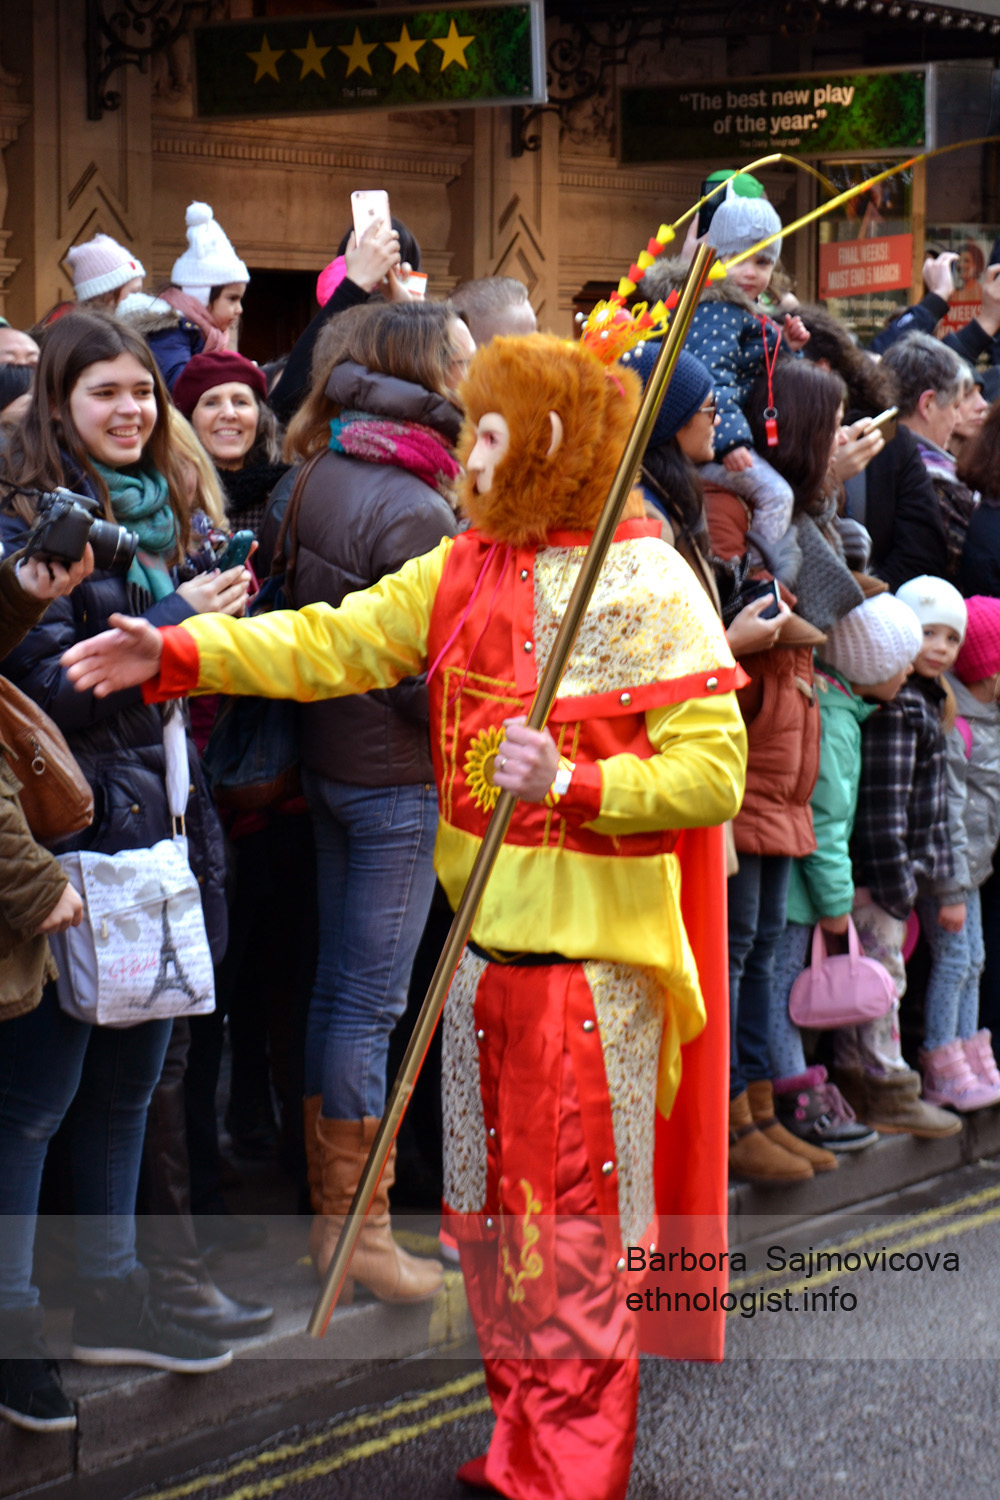 Fire Monkey wishing happy Chinese New Year during traditional celebration near Chinatown in London. Photo: Barbora Sajmovicova, 2016, London.